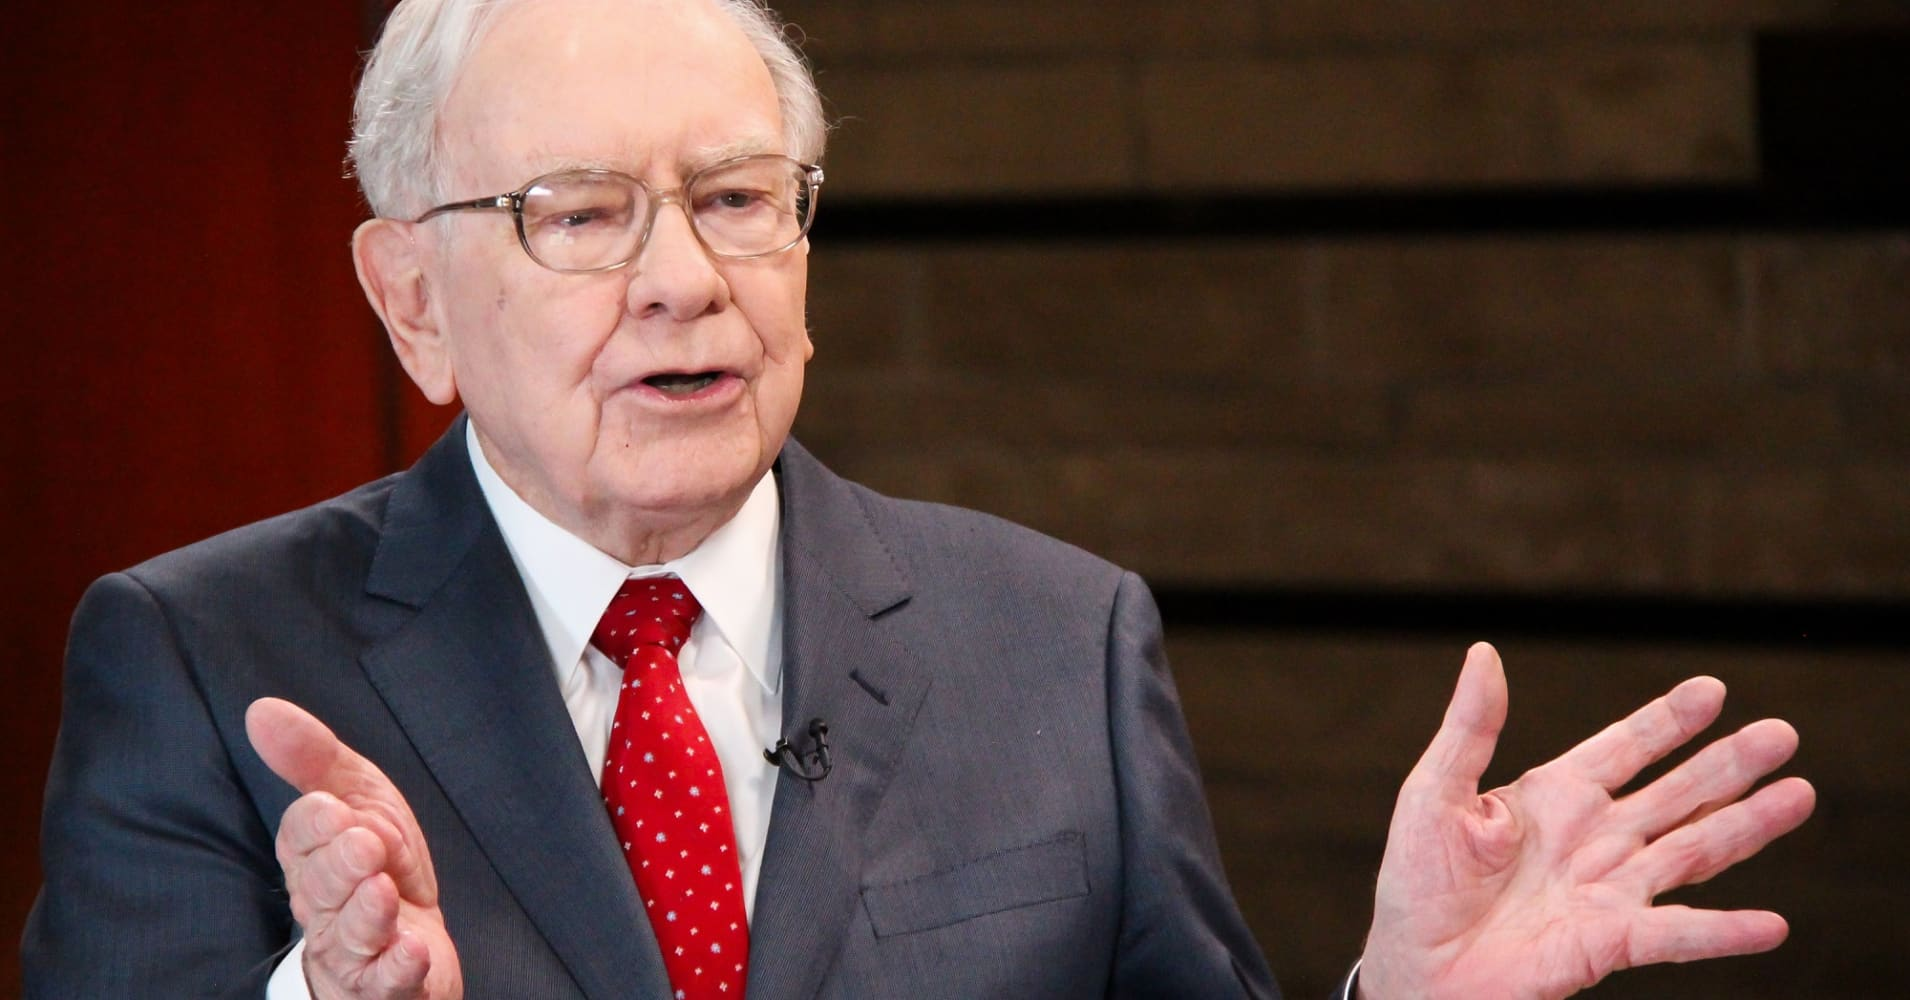 buffett rule The buffett rule 1k likes as multi-billionaire warren buffet has pointed out, his average tax rate is lower than his secretary's no household making.